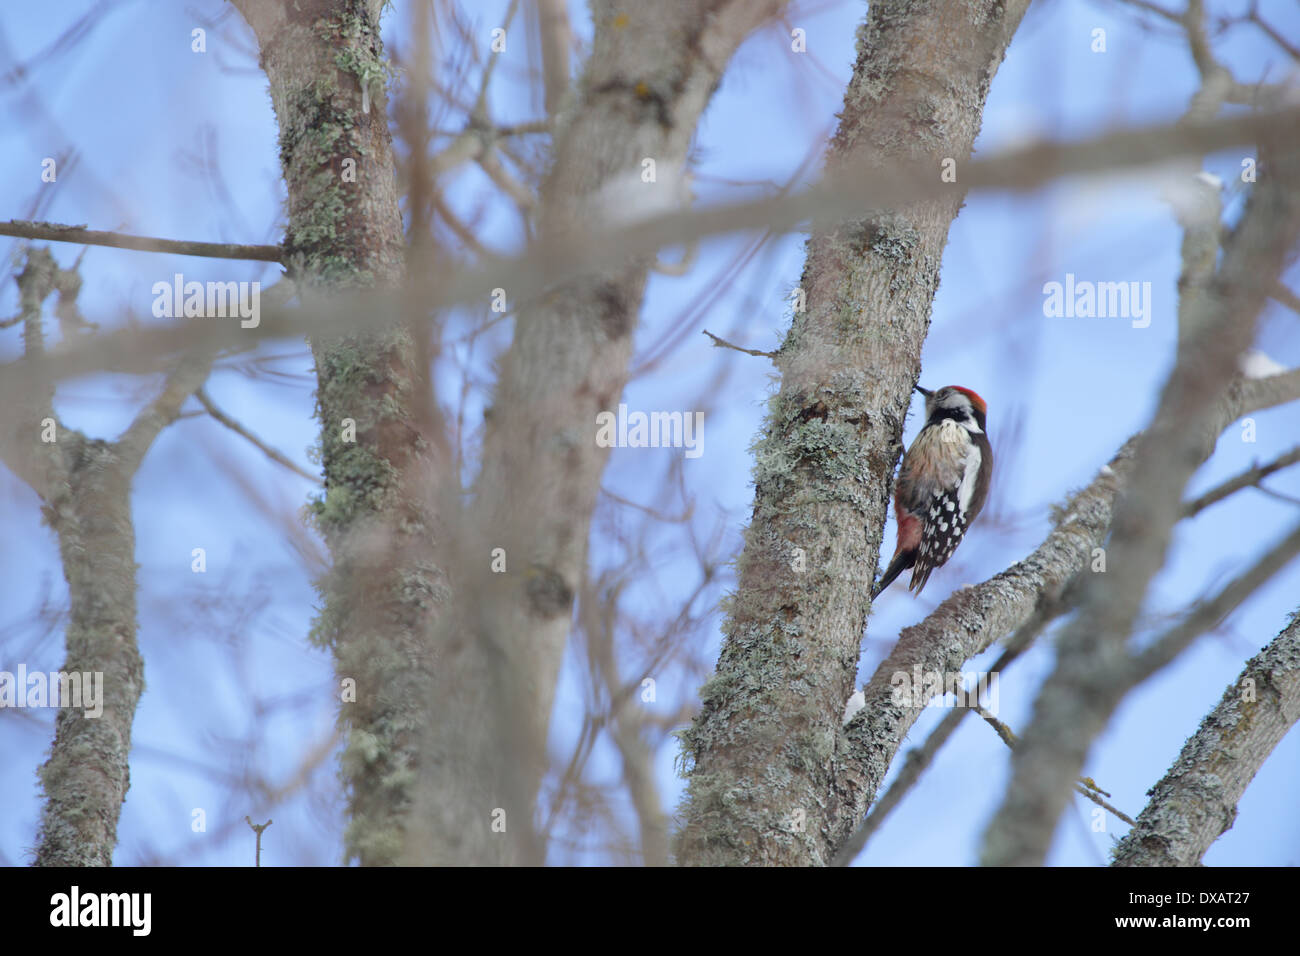 Middle Spotted Woodpecker (Dendrocopos medius), Europe Stock Photo